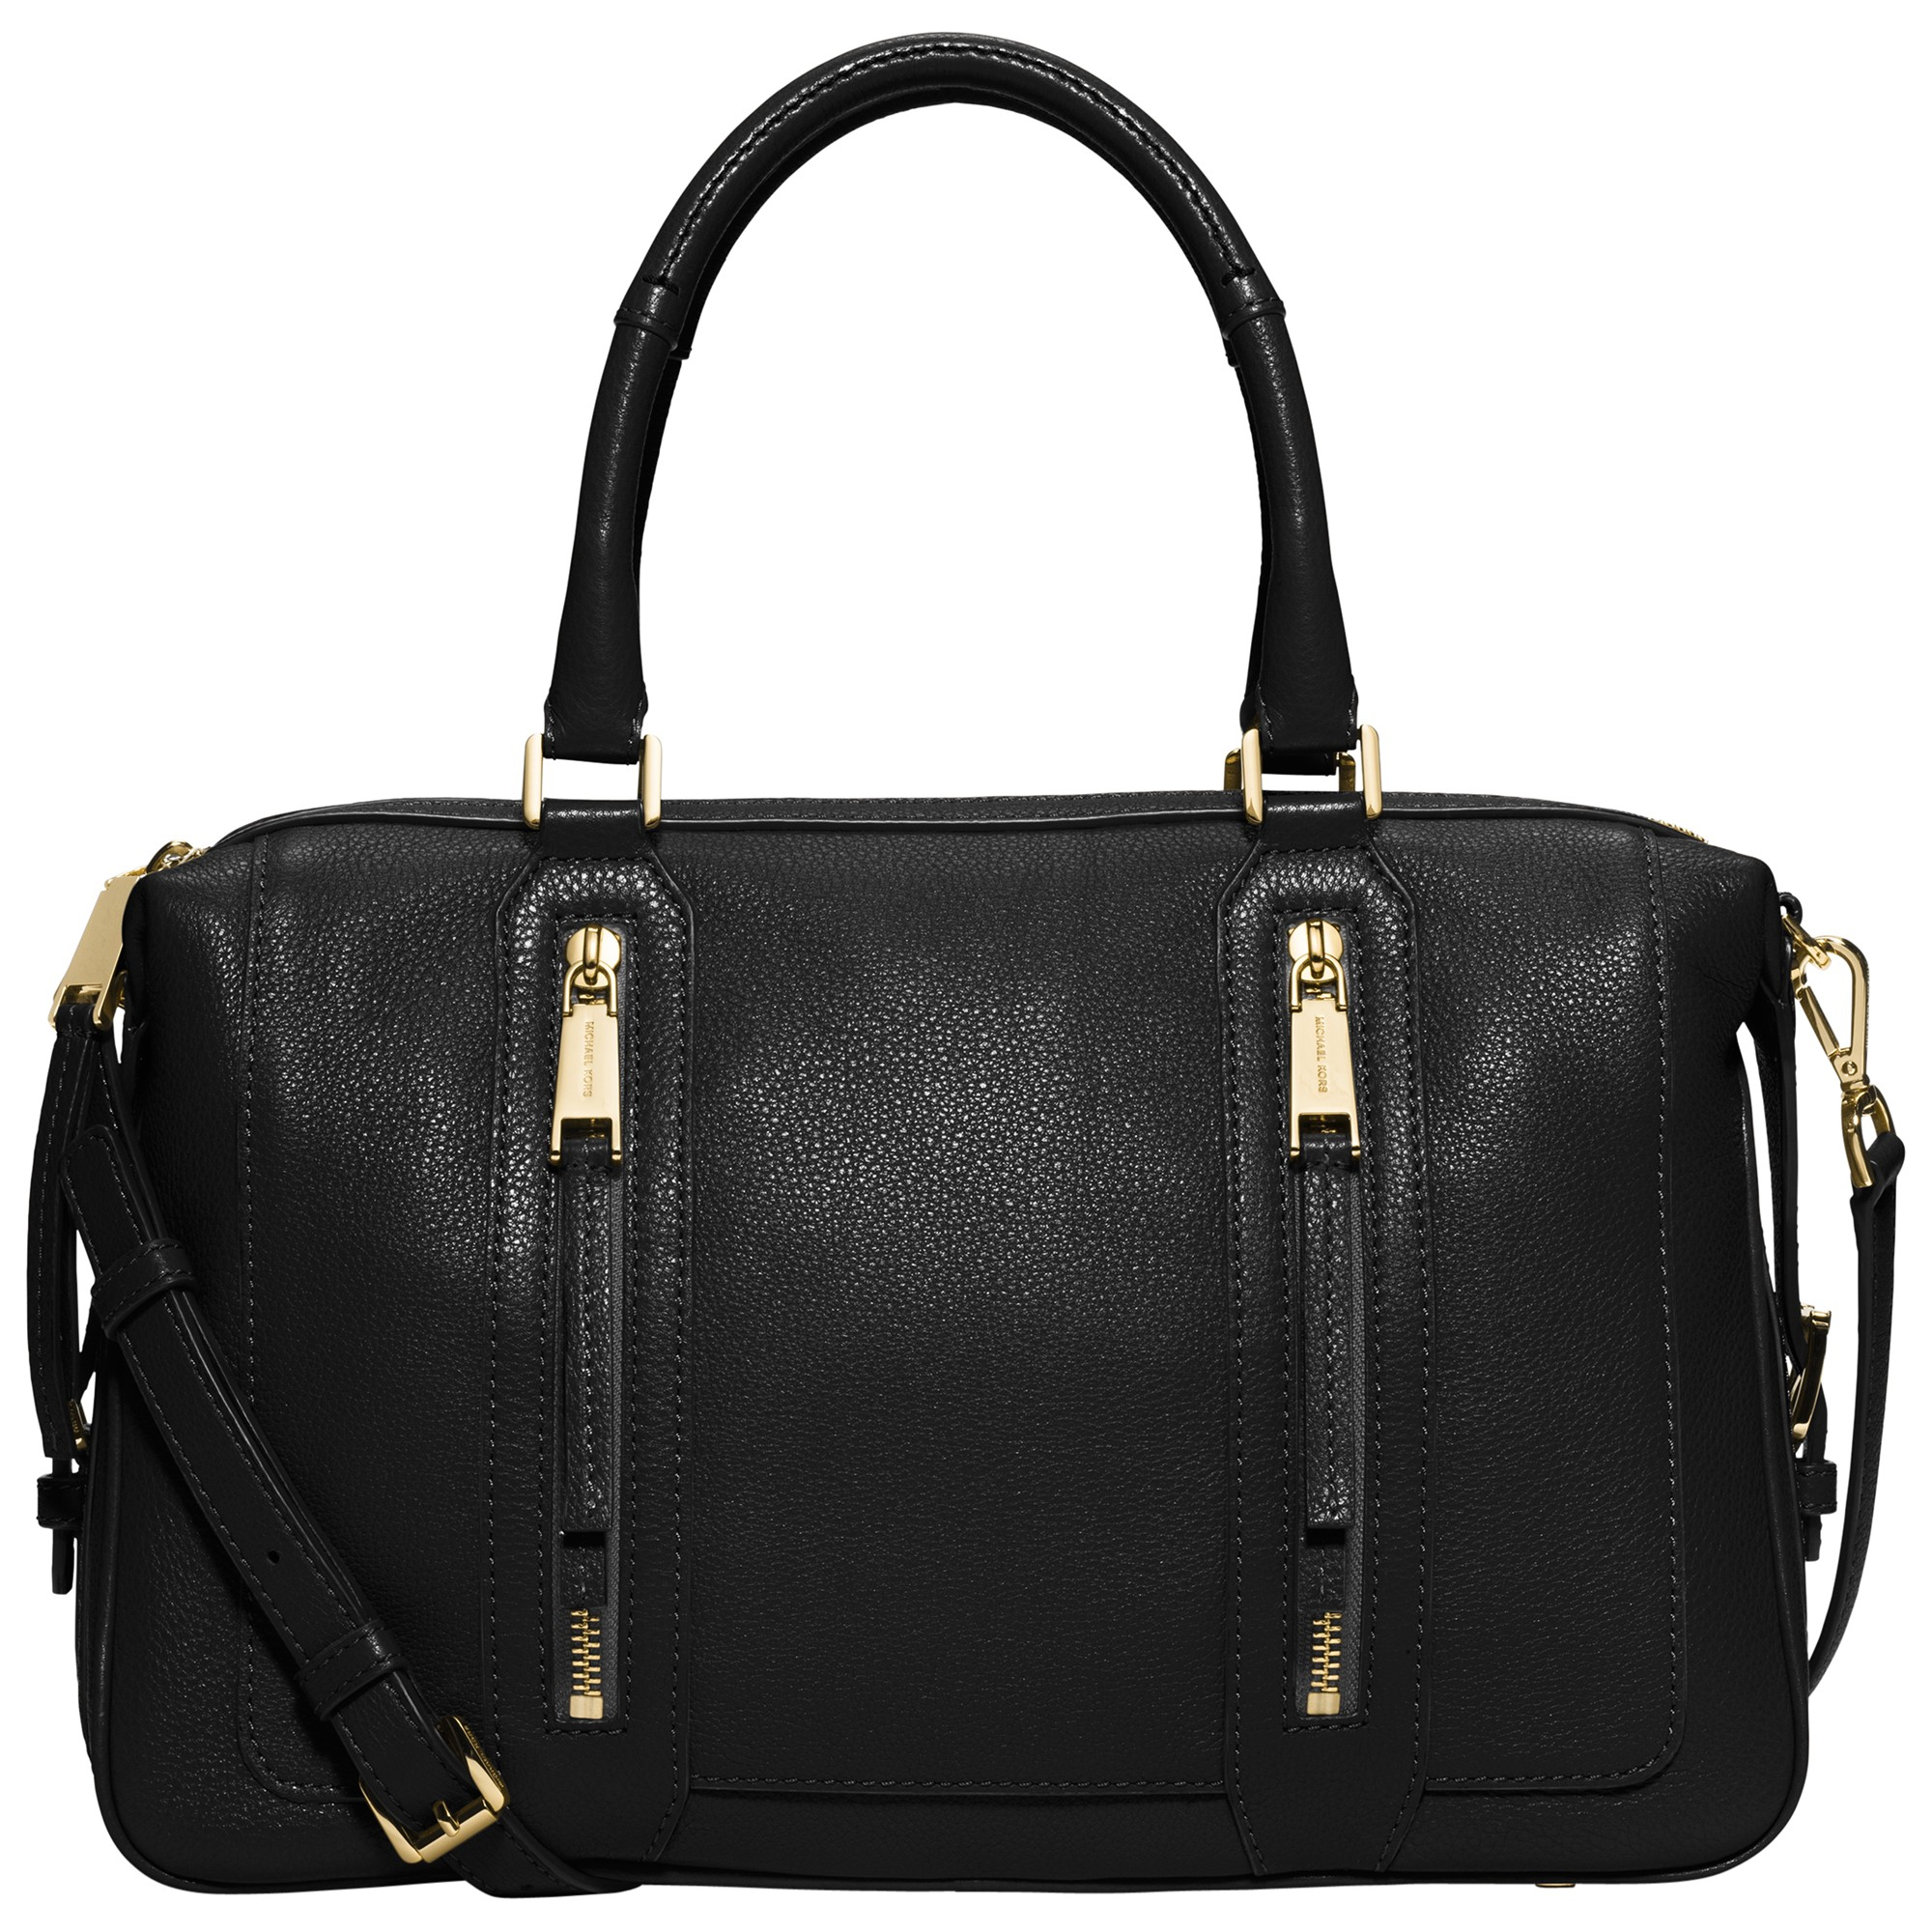 19d038cff255e9 ... promo code for michael michael kors julia large leather satchel in  black lyst bf0ac 8bfef